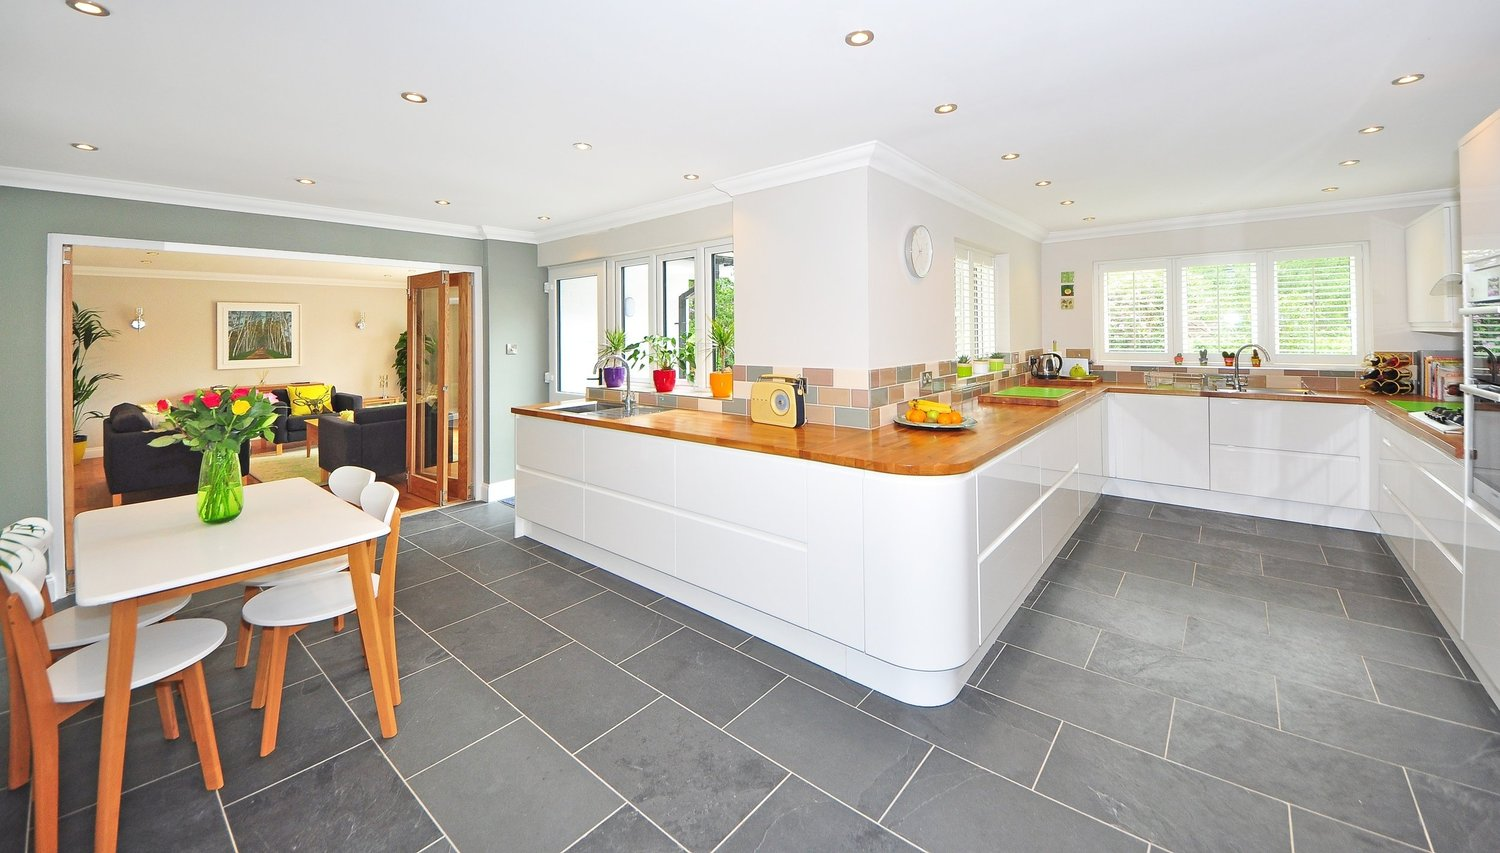 Kitchen Unit Spray Painting Professional Spray Painters In Leeds Upvc Windows Doors And More